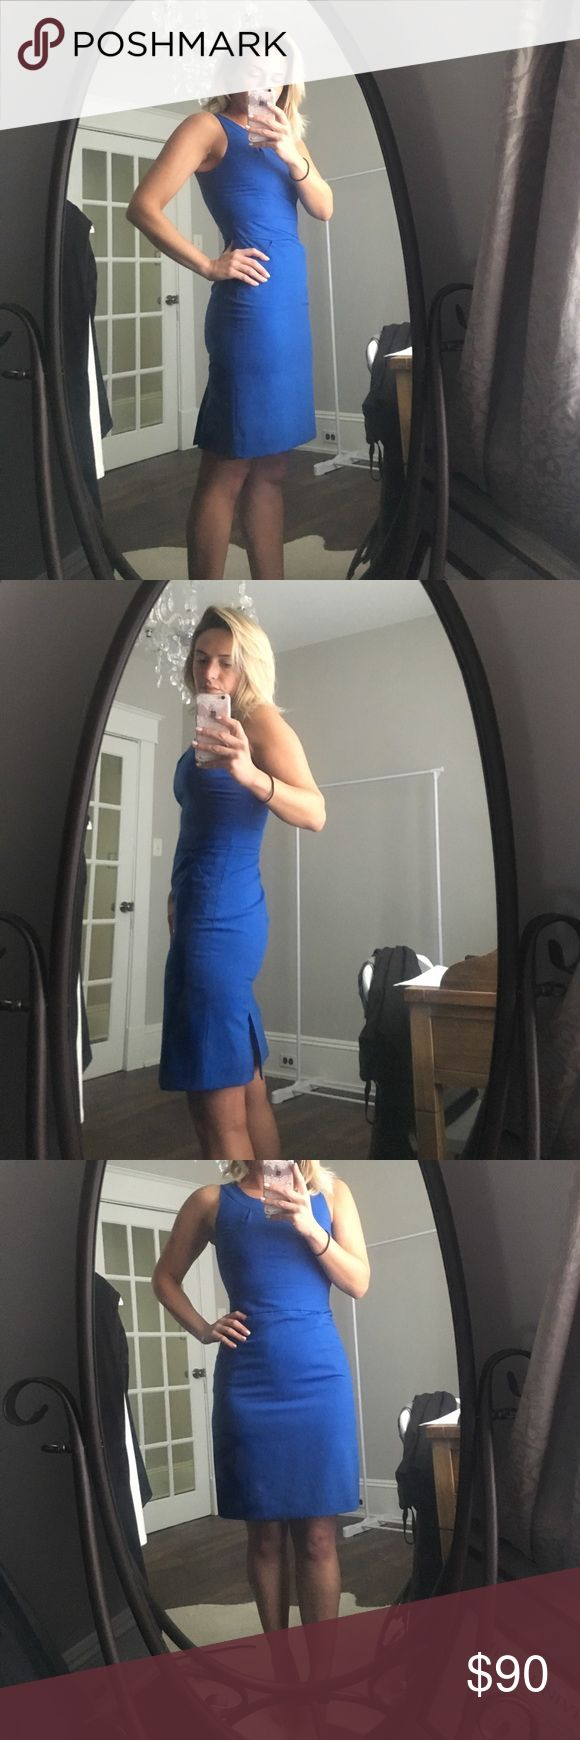 J. Crew Factory cobalt blue sleeveless dress What a beautiful color! Great for work! Fully lined, pockets are still stitched shut for a slimming silhouette. Double back slit. Bra straps stay hidden with snaps located on each strap. Brand new. Never worn...I just ripped the tags off as soon as I got it...bad habit 🙄 J. Crew Dresses Midi